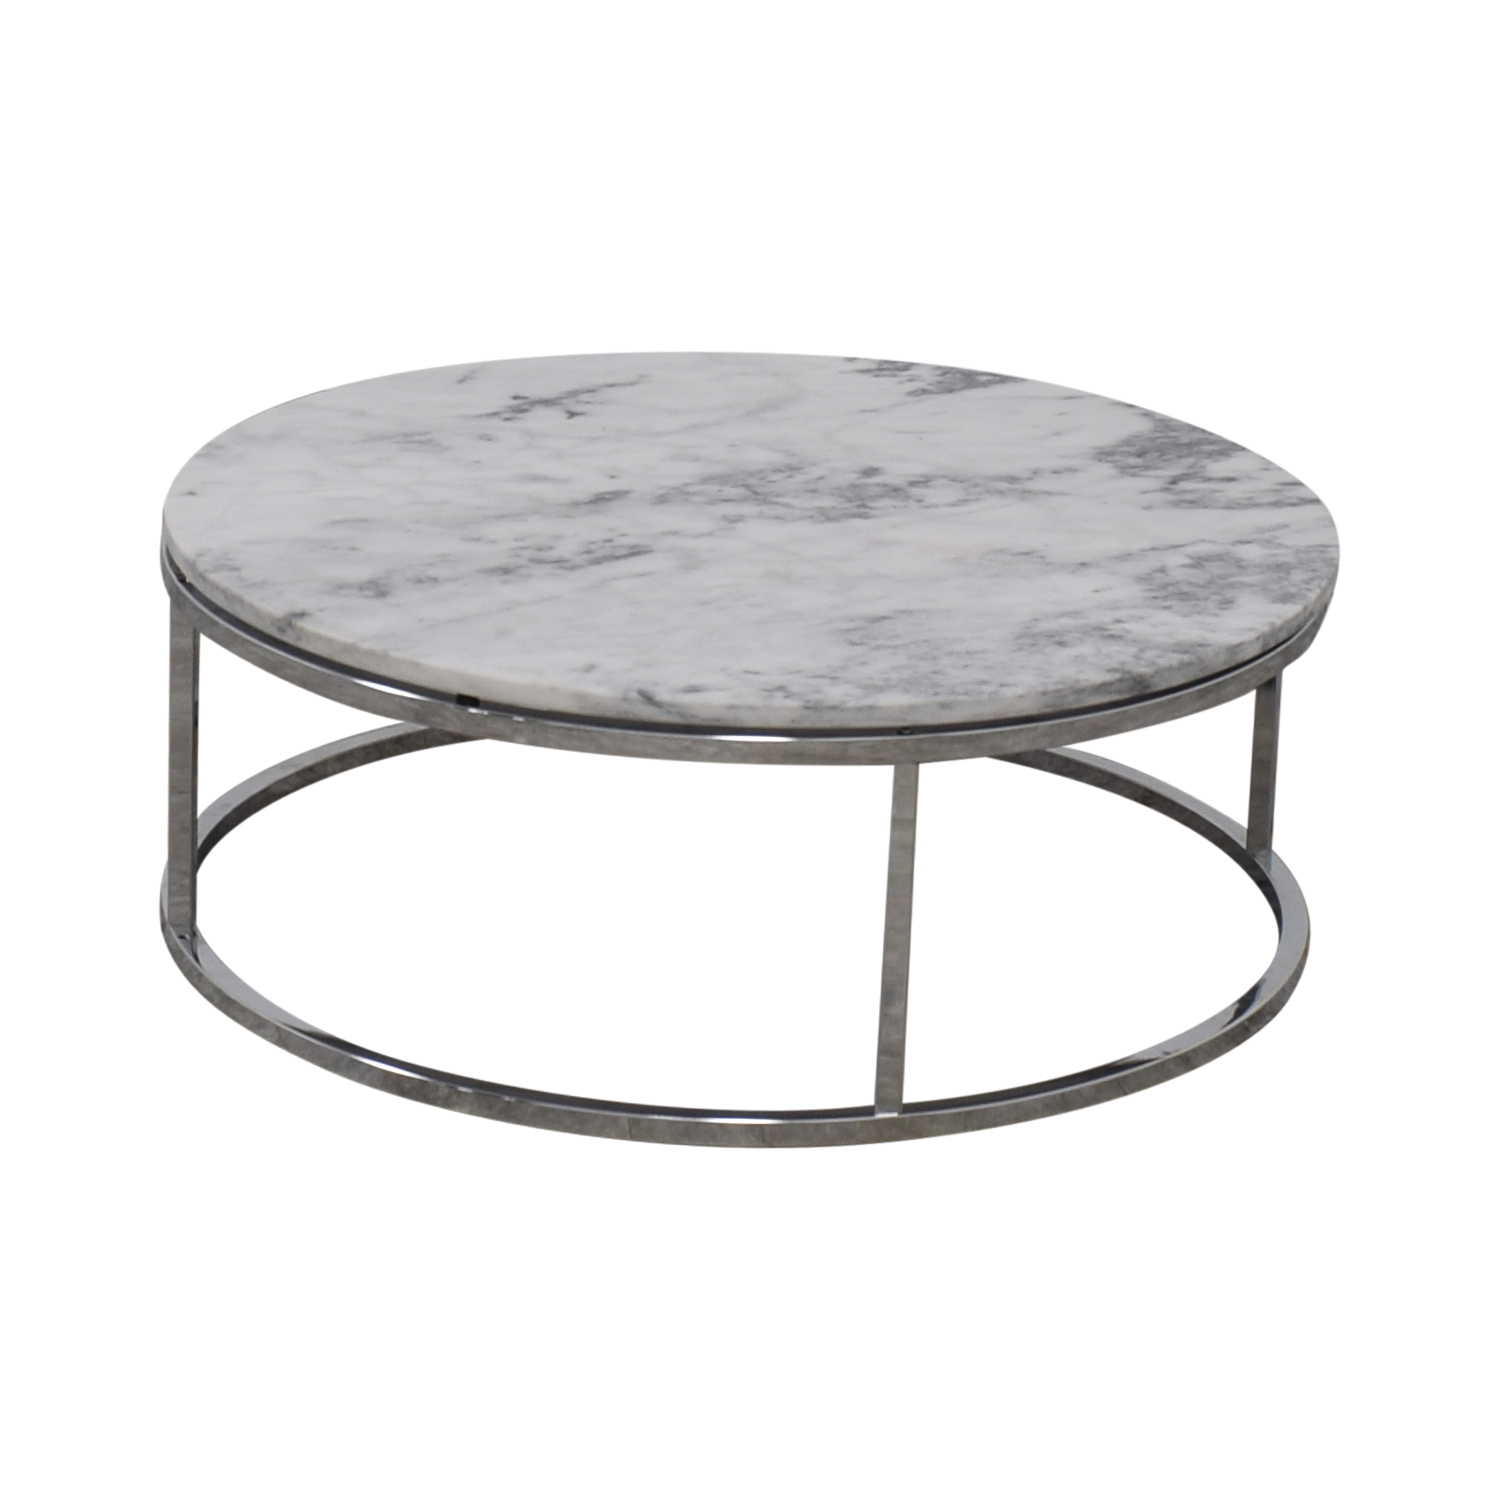 CB2 Round White Marble Coffee Table / Tables